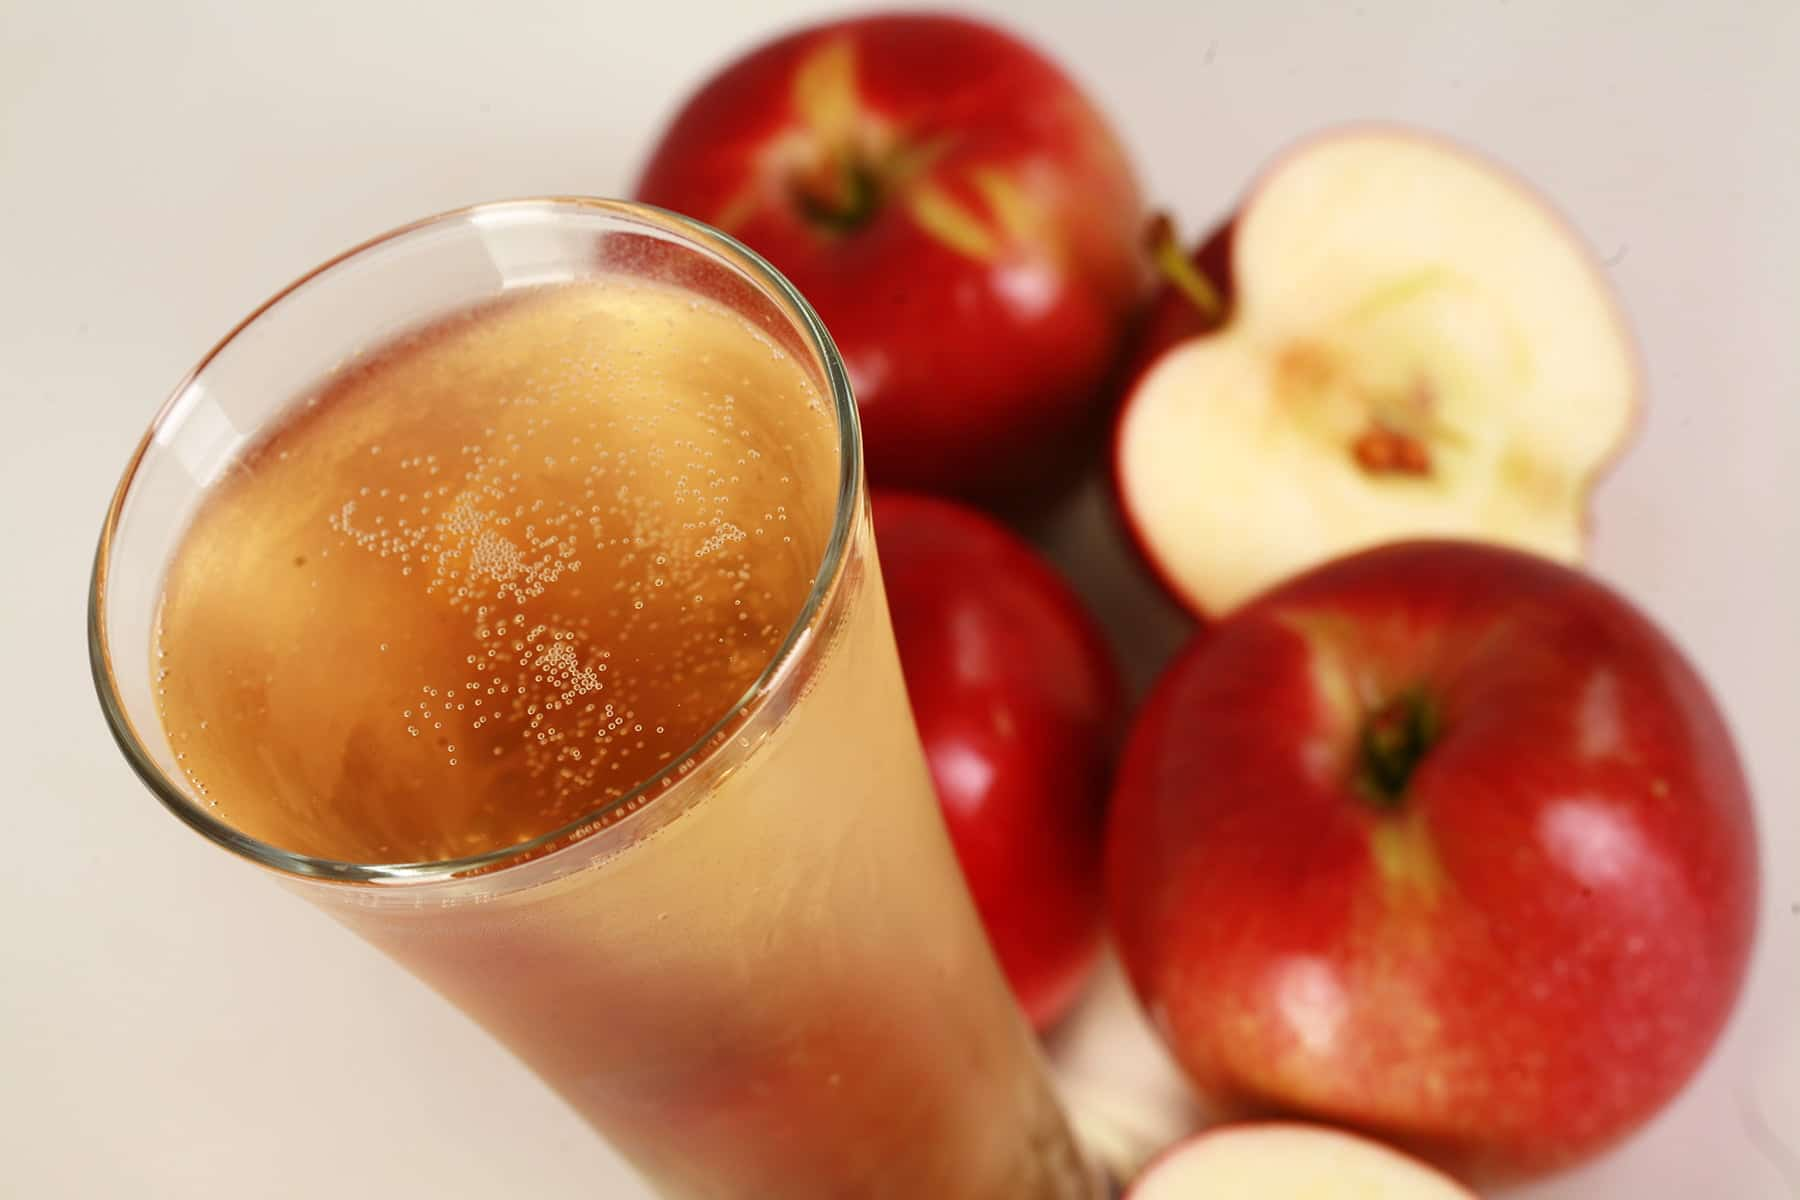 A glass of homemade hard apple cider, surrounded by apples.